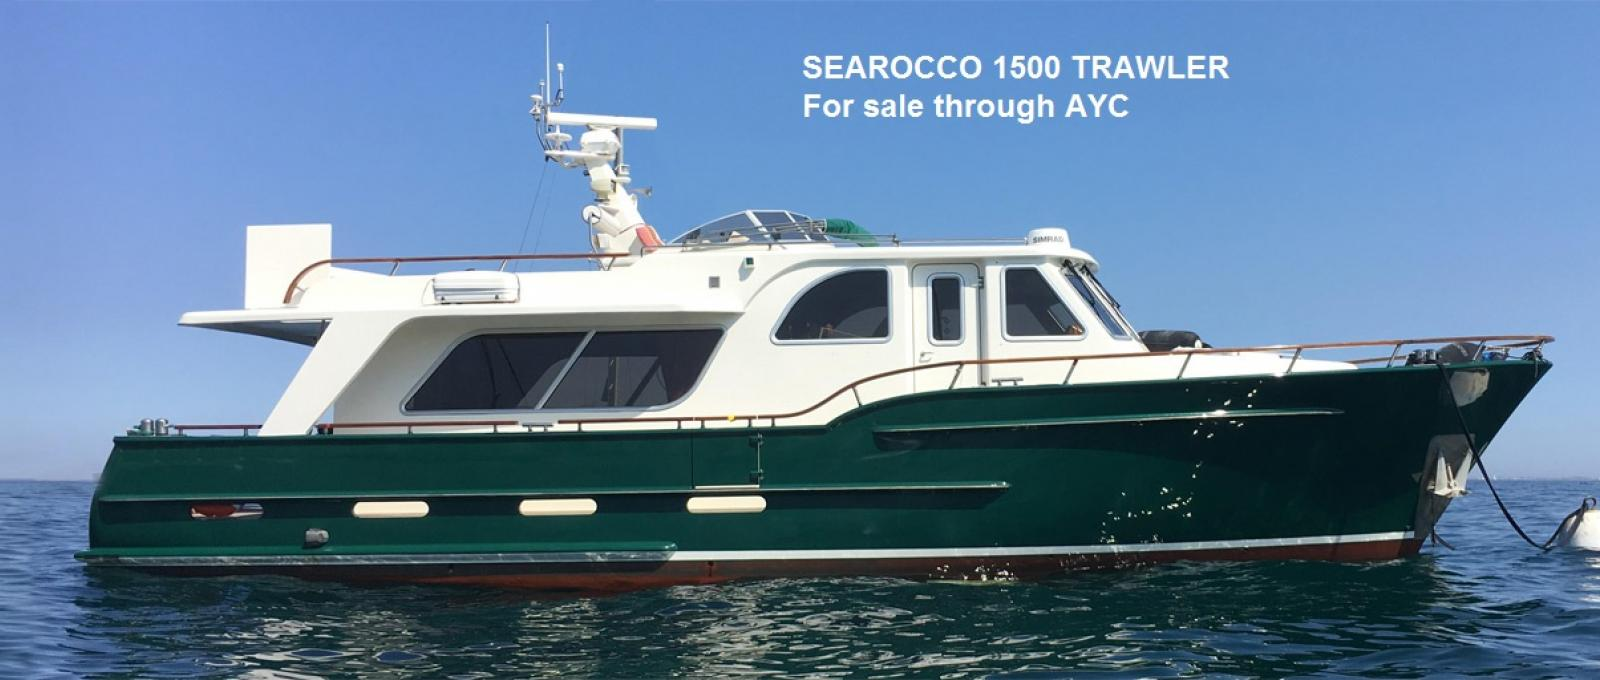 AYC Yachtbroker | Buying and selling used boat, sailboat